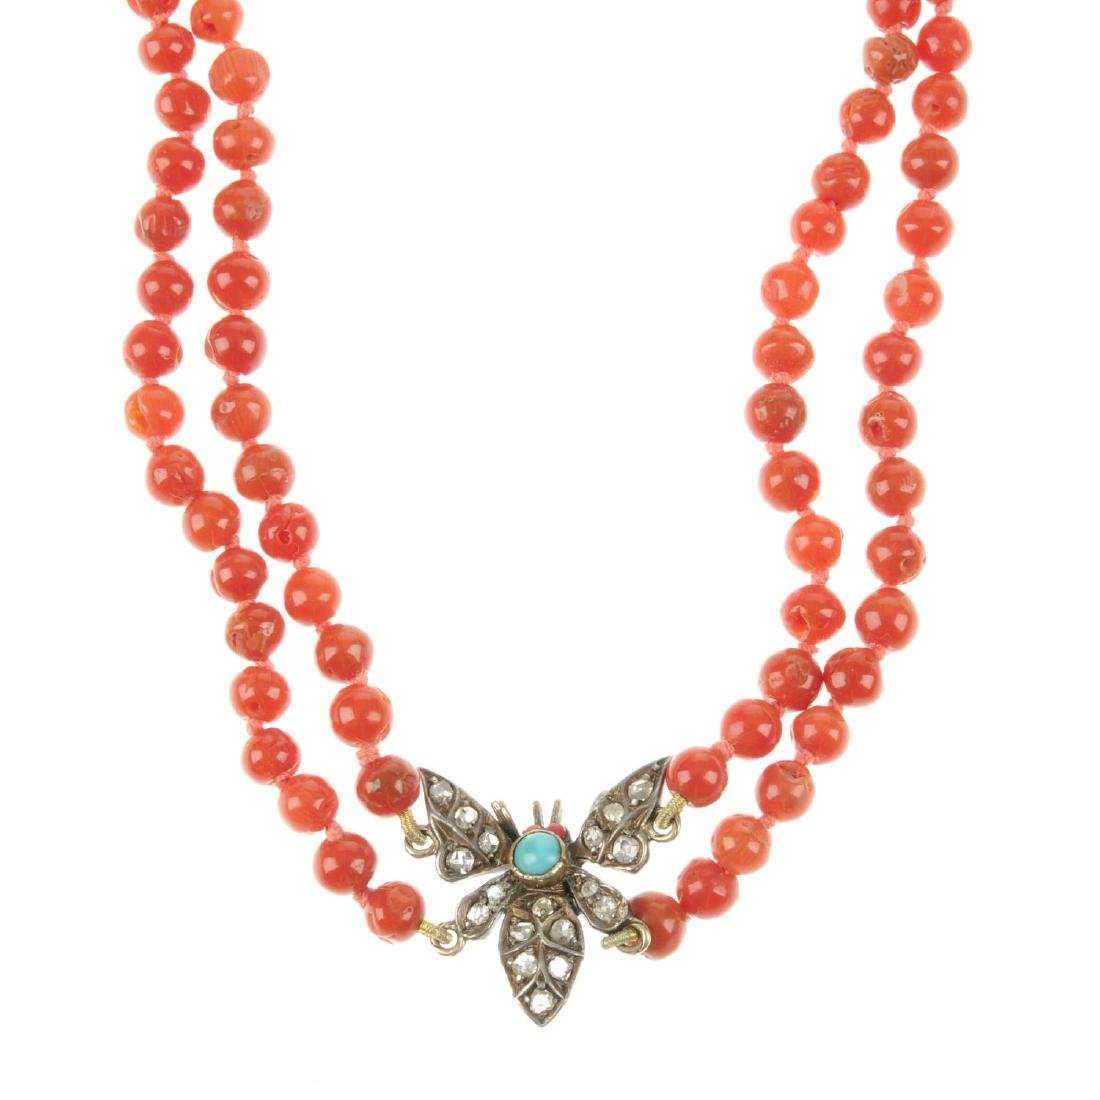 A coral necklace with diamond and turquoise butterfly